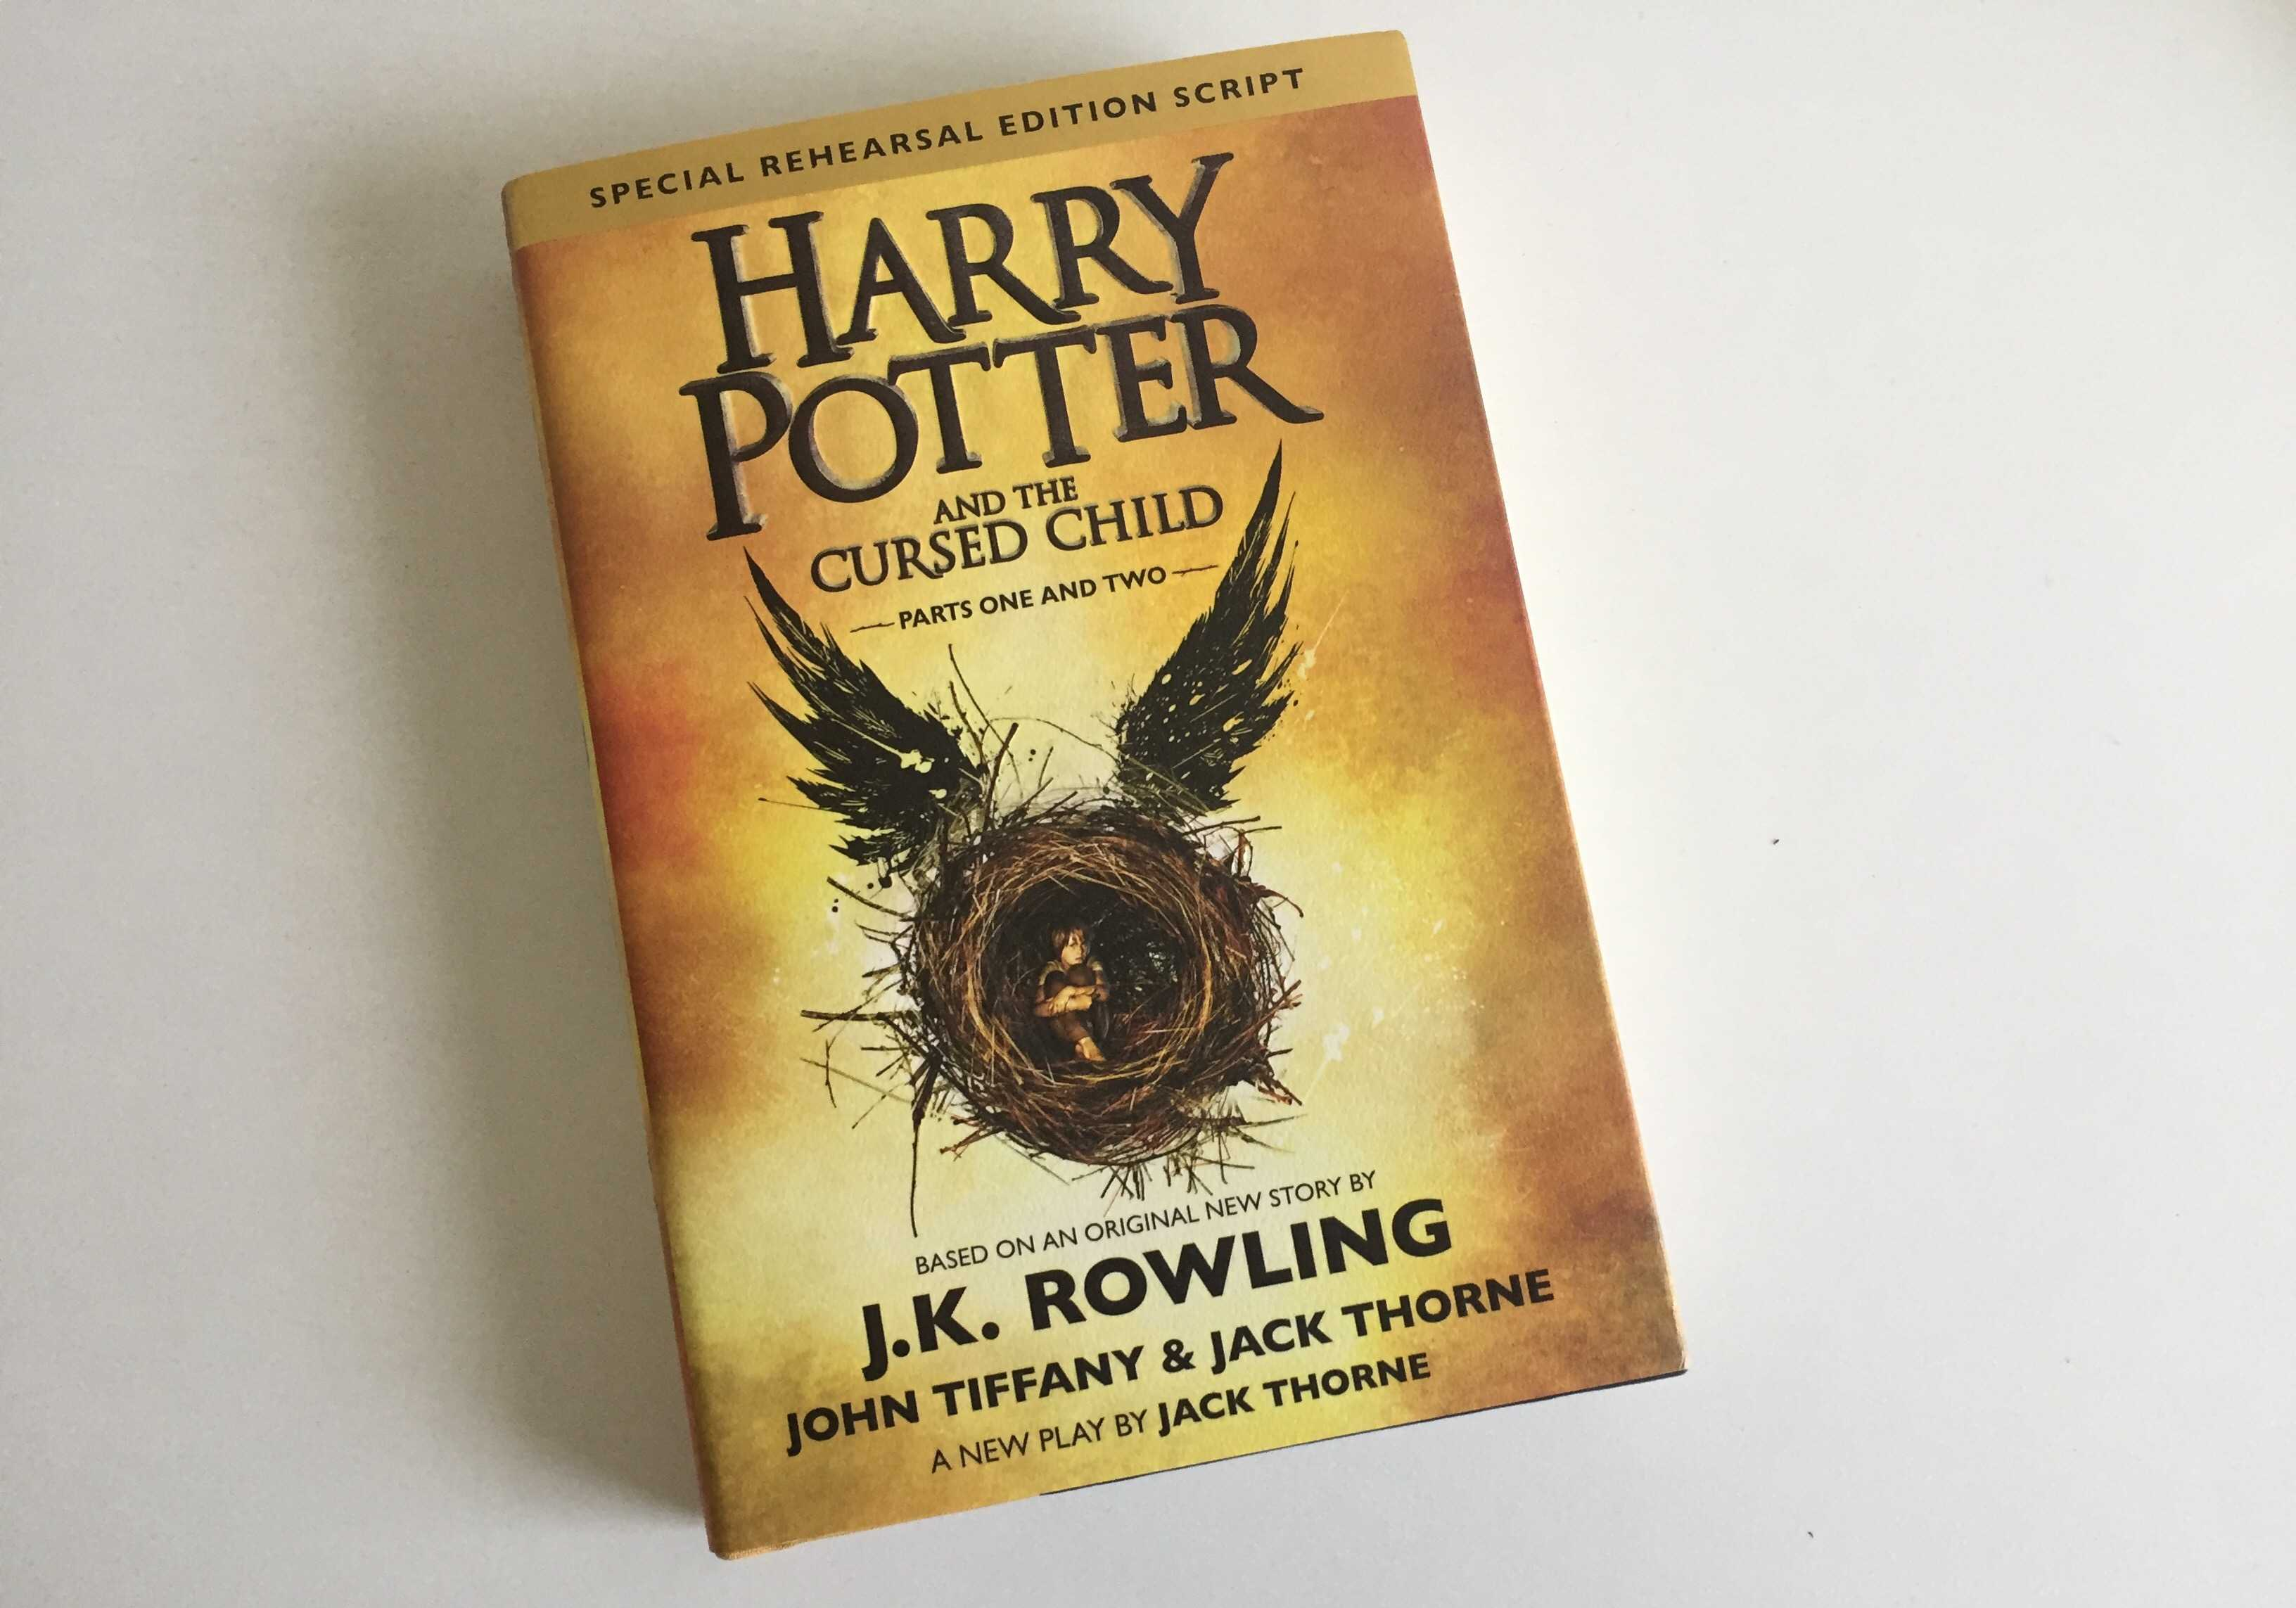 Harry Potter and the Cursed Child: 'A story I will gladly reread'